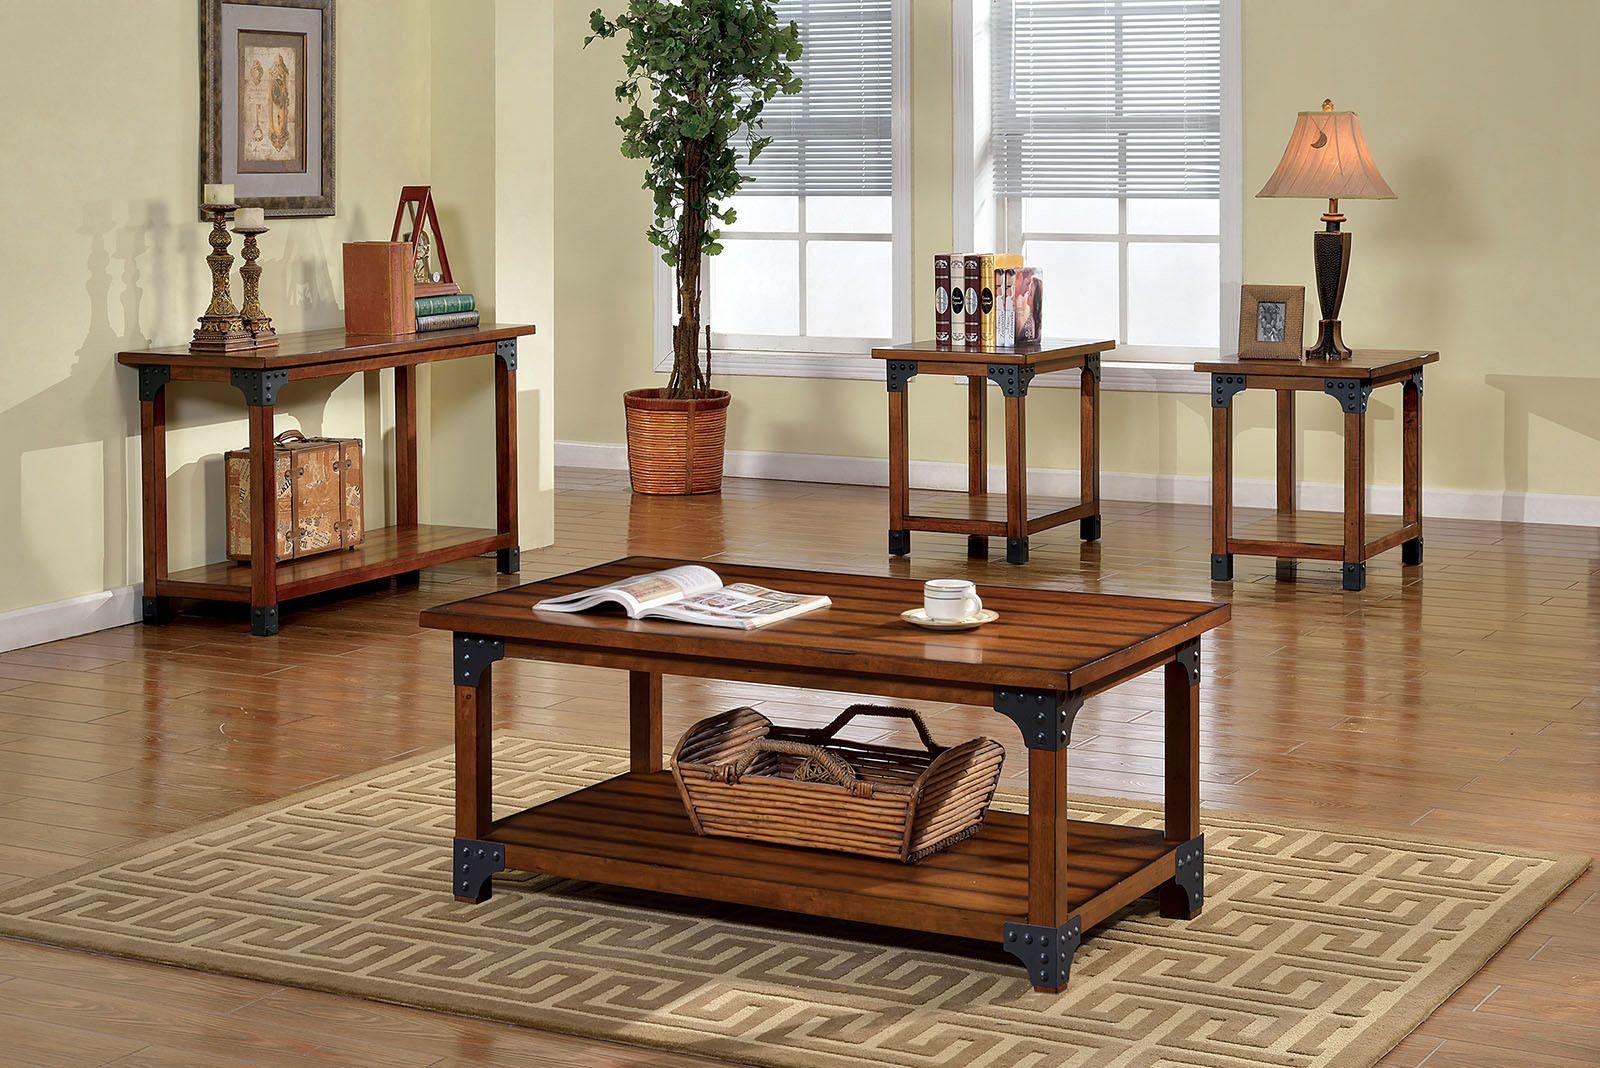 3 Piece Living Room Table Set Cheap Coffee Table Oak Coffee Table 3 Piece Coffee Table Set [ 785 x 1200 Pixel ]